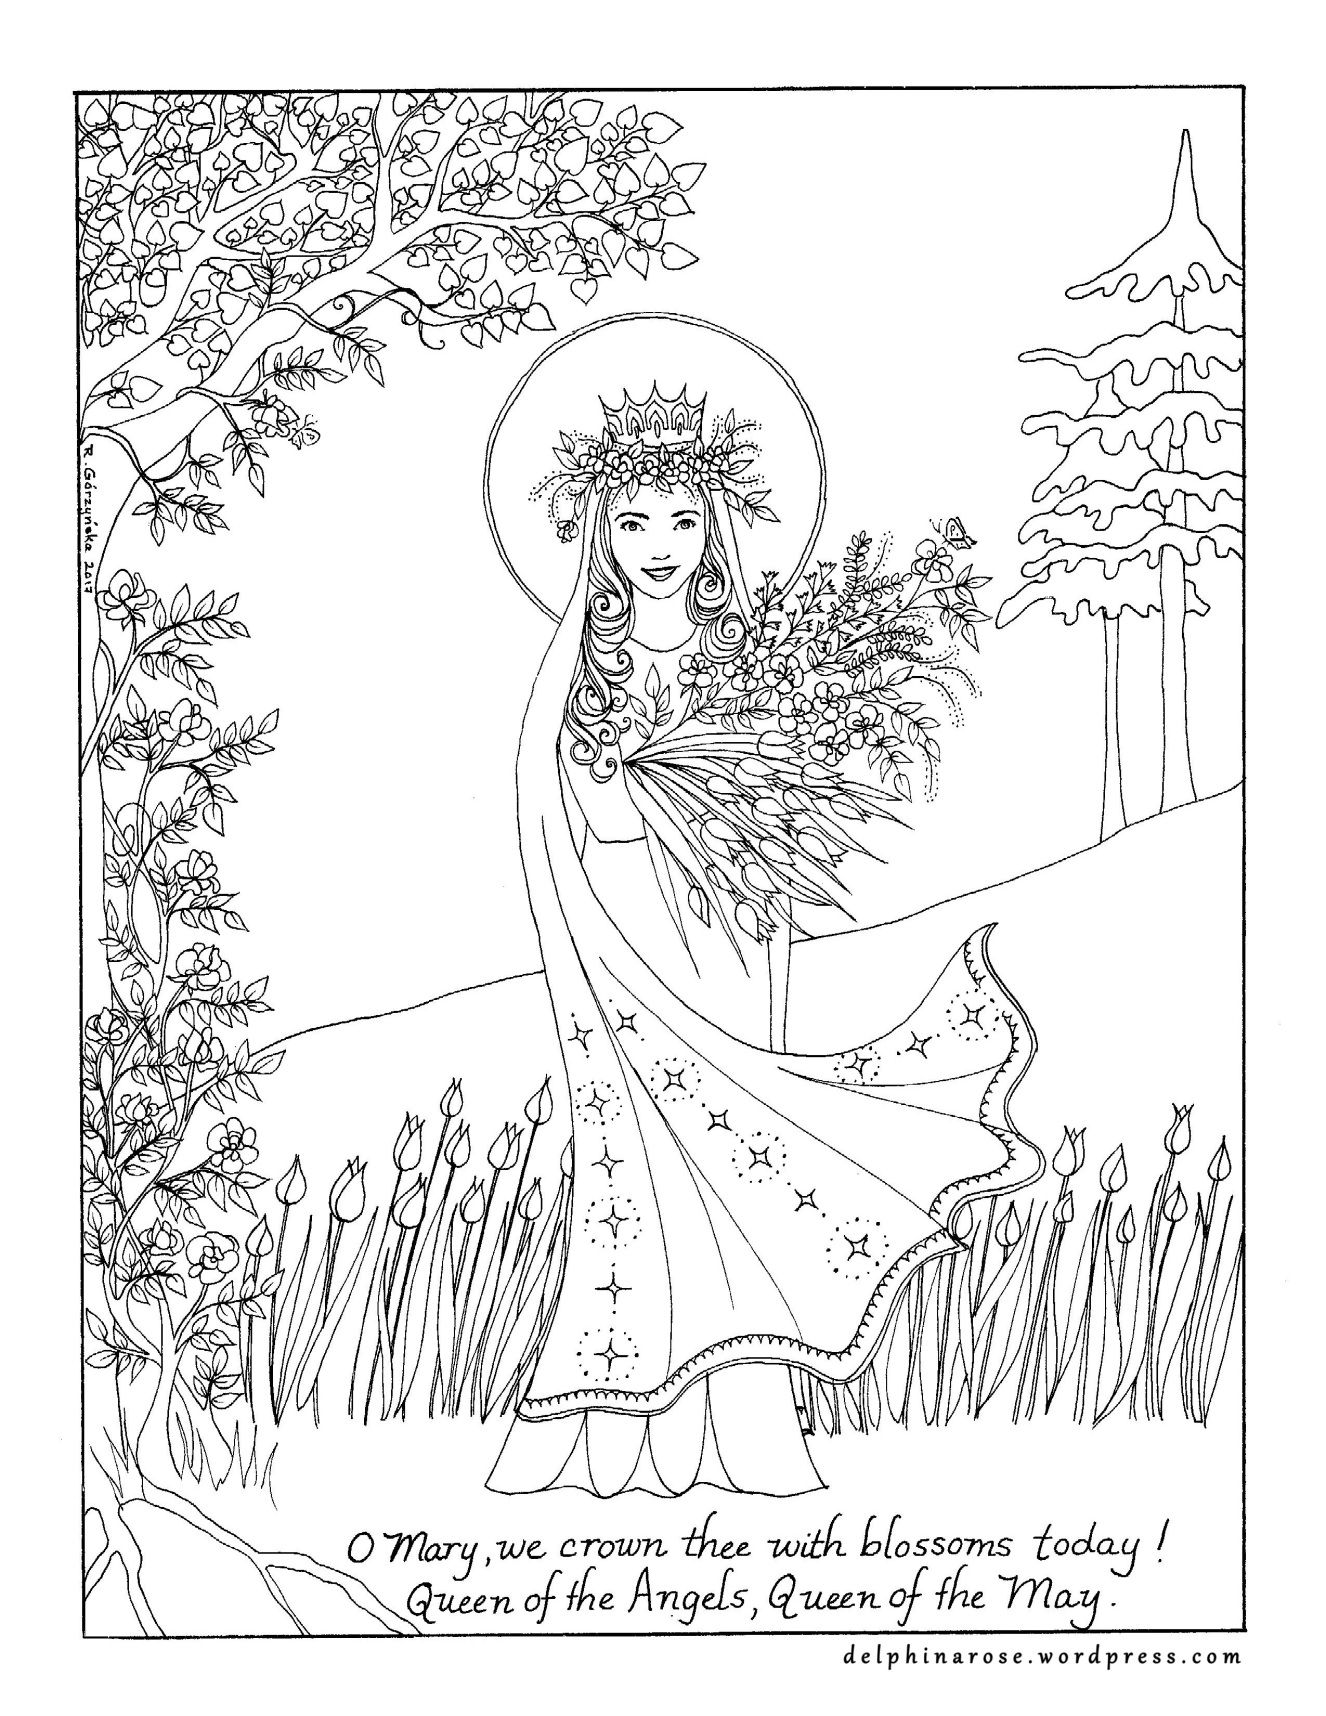 May Queen — Catholic Coloring Page Coloring pages